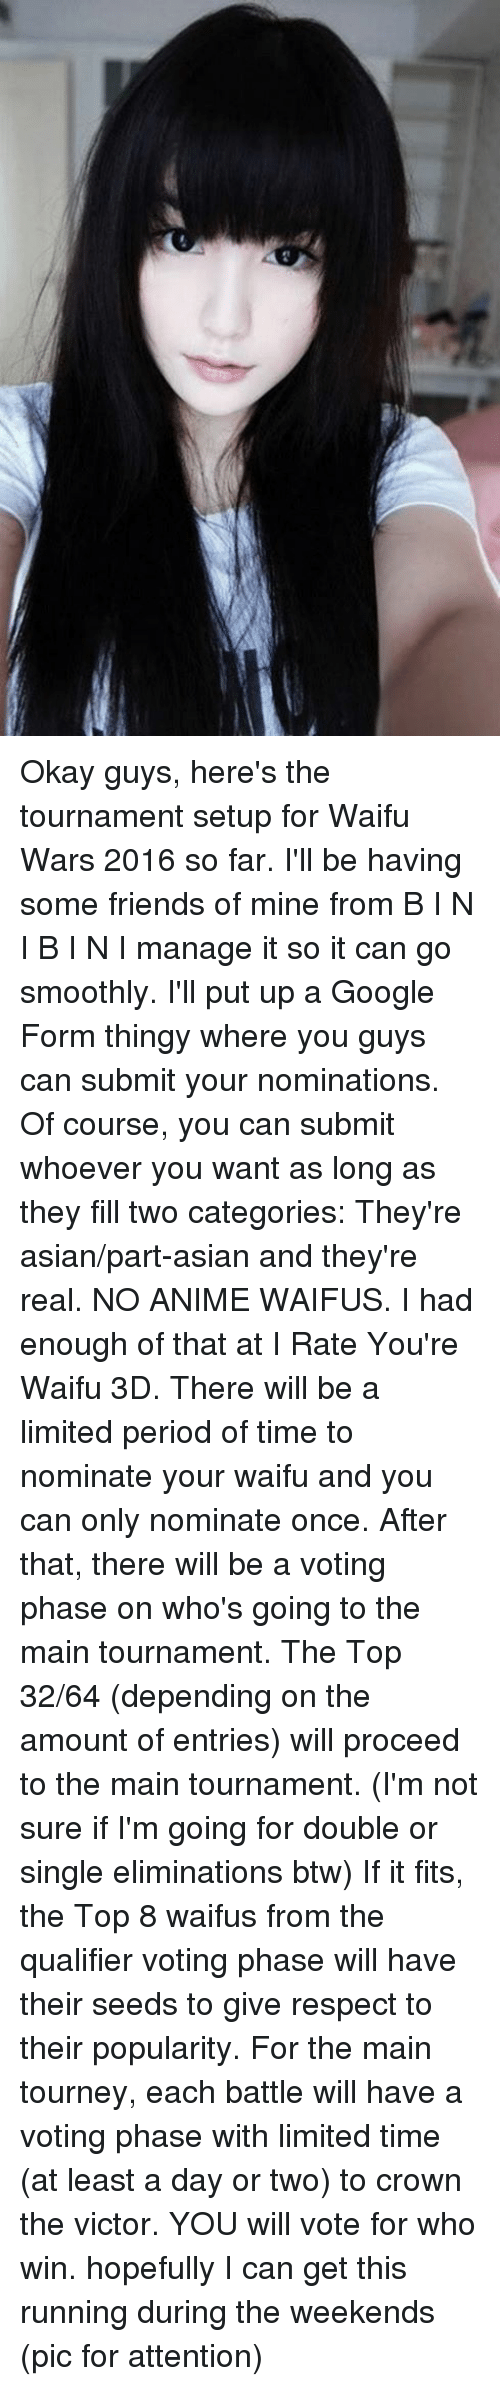 Animals, Anime, and Asian: Okay guys, here's the tournament setup for Waifu Wars 2016 so far. I'll be having some friends of mine from B I N I B I N I manage it so it can go smoothly.  I'll put up a Google Form thingy where you guys can submit your nominations. Of course, you can submit whoever you want as long as they fill two categories: They're asian/part-asian and they're real. NO ANIME WAIFUS. I had enough of that at I Rate You're Waifu 3D. There will be a limited period of time to nominate your waifu and you can only nominate once.  After that, there will be a voting phase on who's going to the main tournament. The Top 32/64 (depending on the amount of entries) will proceed to the main tournament. (I'm not sure if I'm going for double or single eliminations btw)  If it fits, the Top 8 waifus from the qualifier voting phase will have their seeds to give respect to their popularity.  For the main tourney, each battle will have a voting phase with limited time (at least a day or two) to crown the victor. YOU will vote for who win. hopefully I can get this running during the weekends (pic for attention)